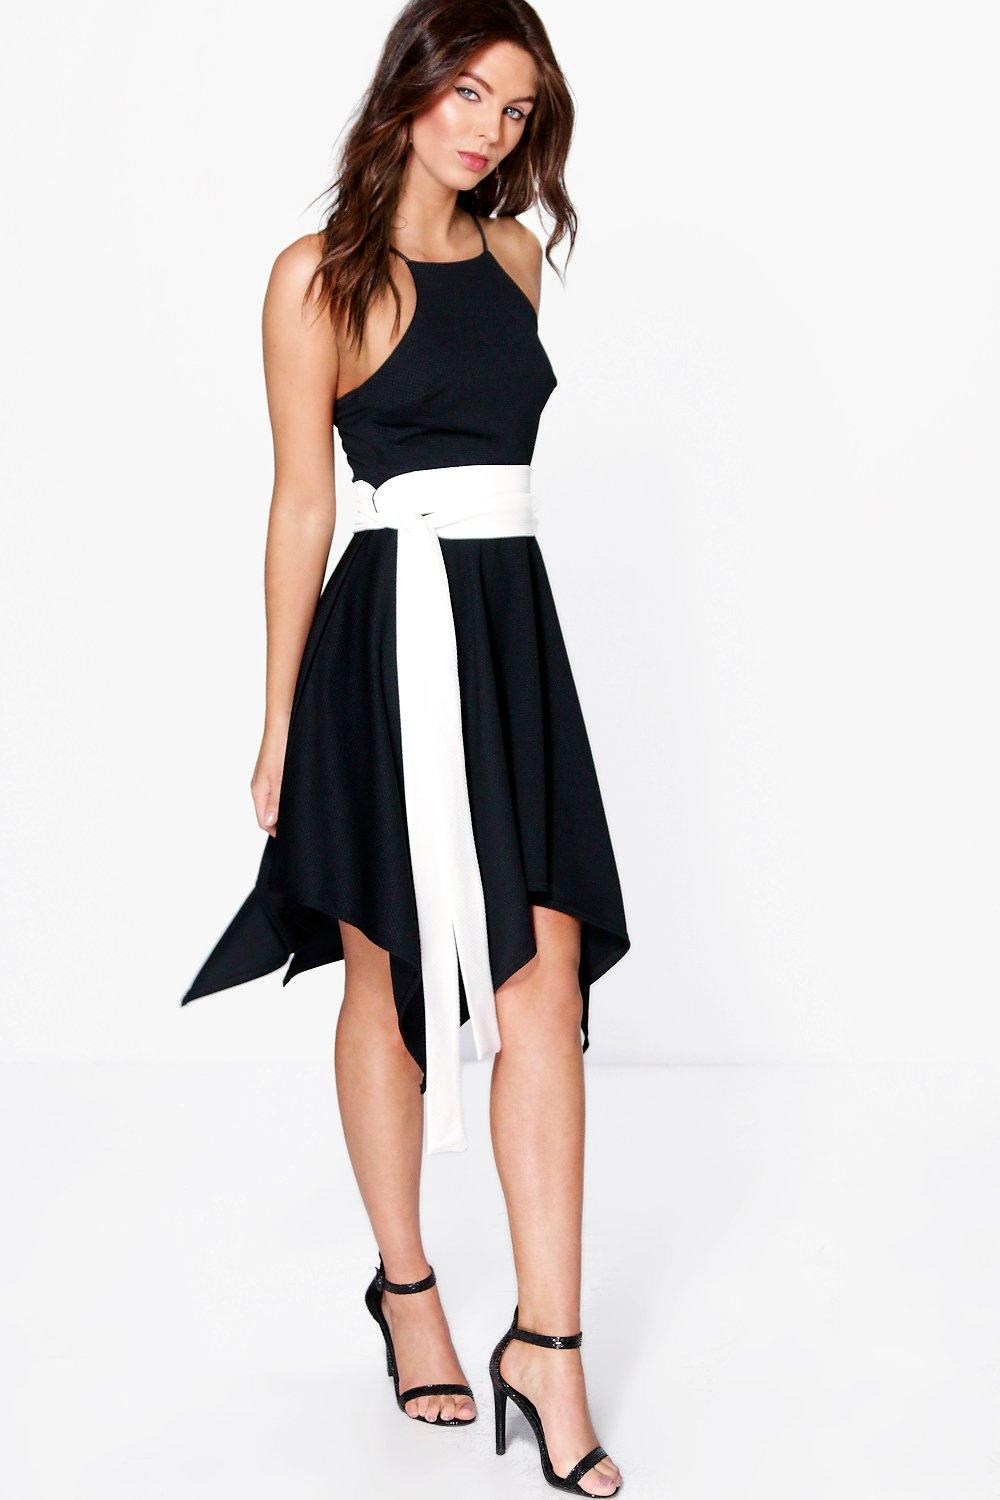 Rachel Textured Fabric Hanky Hem Skater Dress